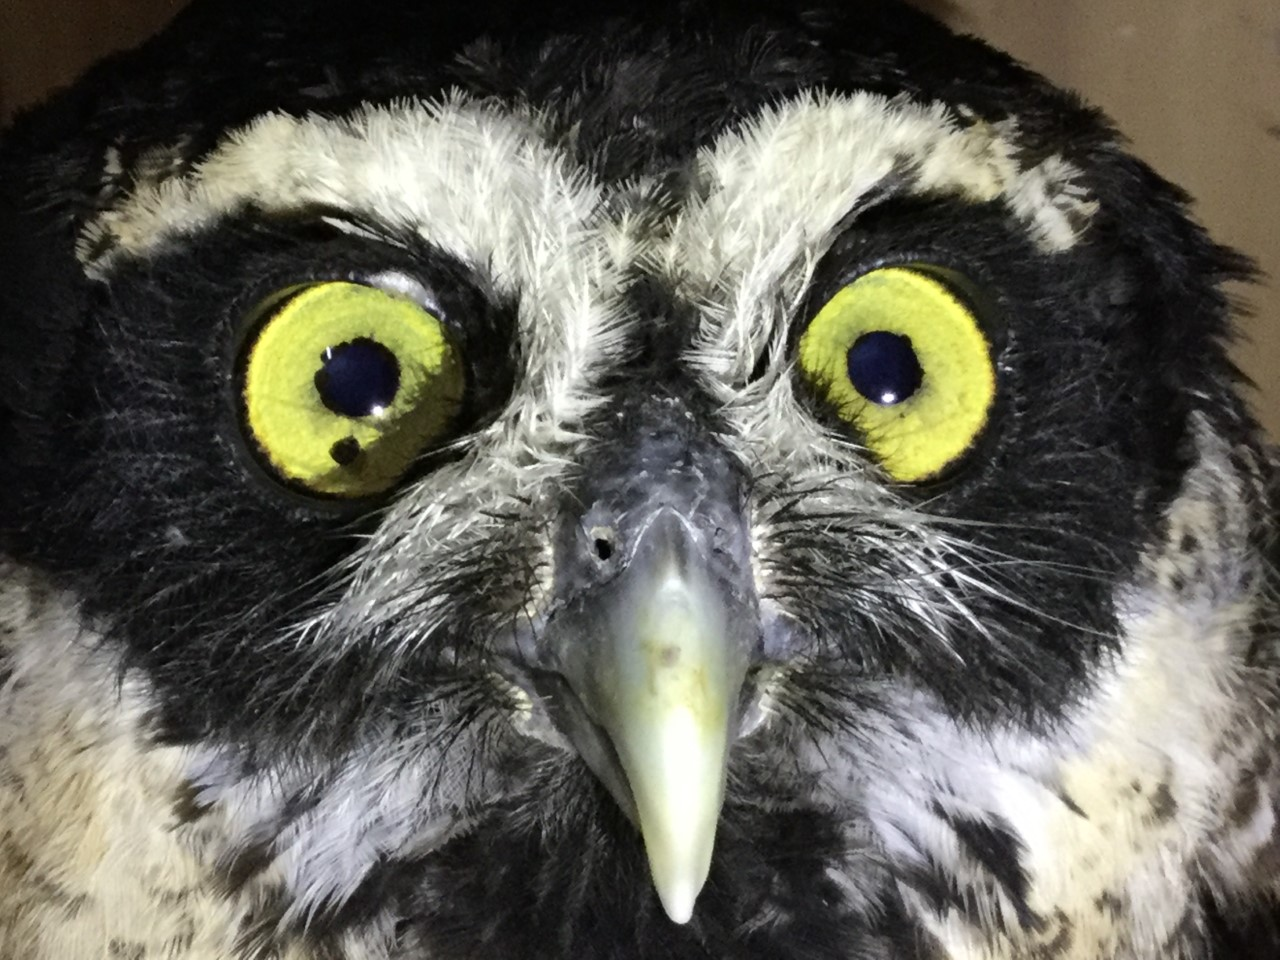 Adult Spectacled Owl.